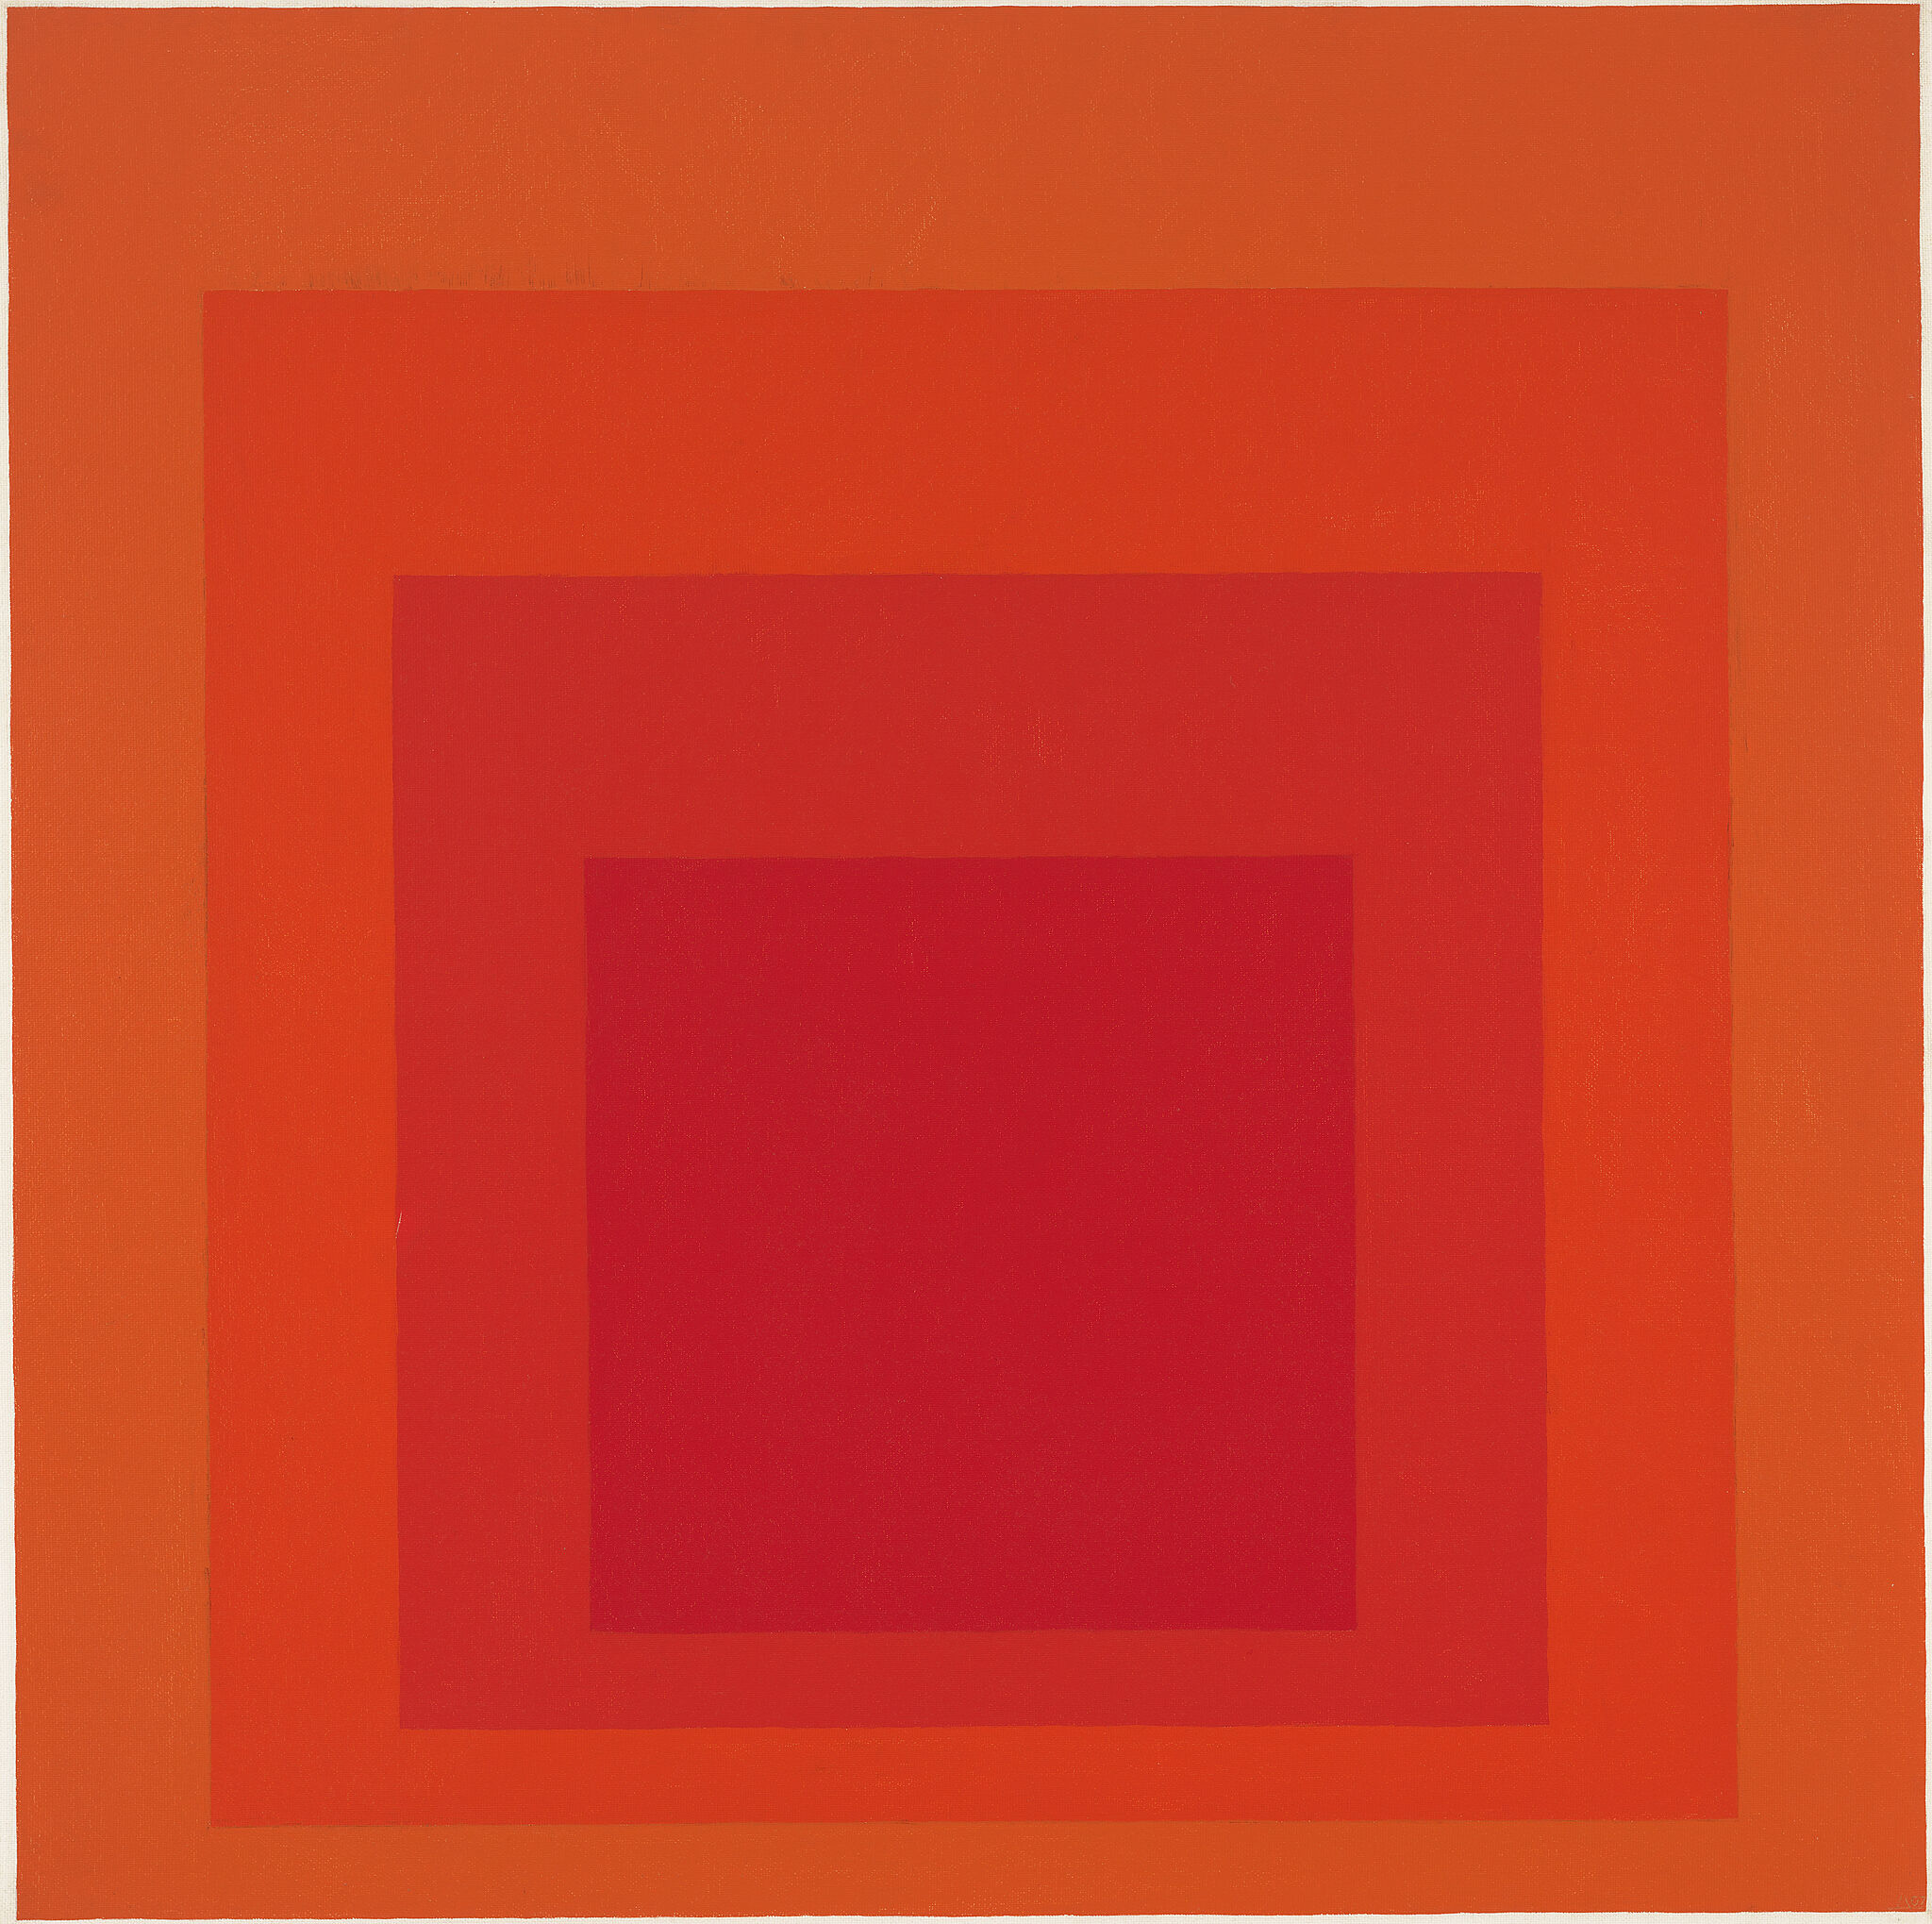 Concentric squares in shades of orange and red.